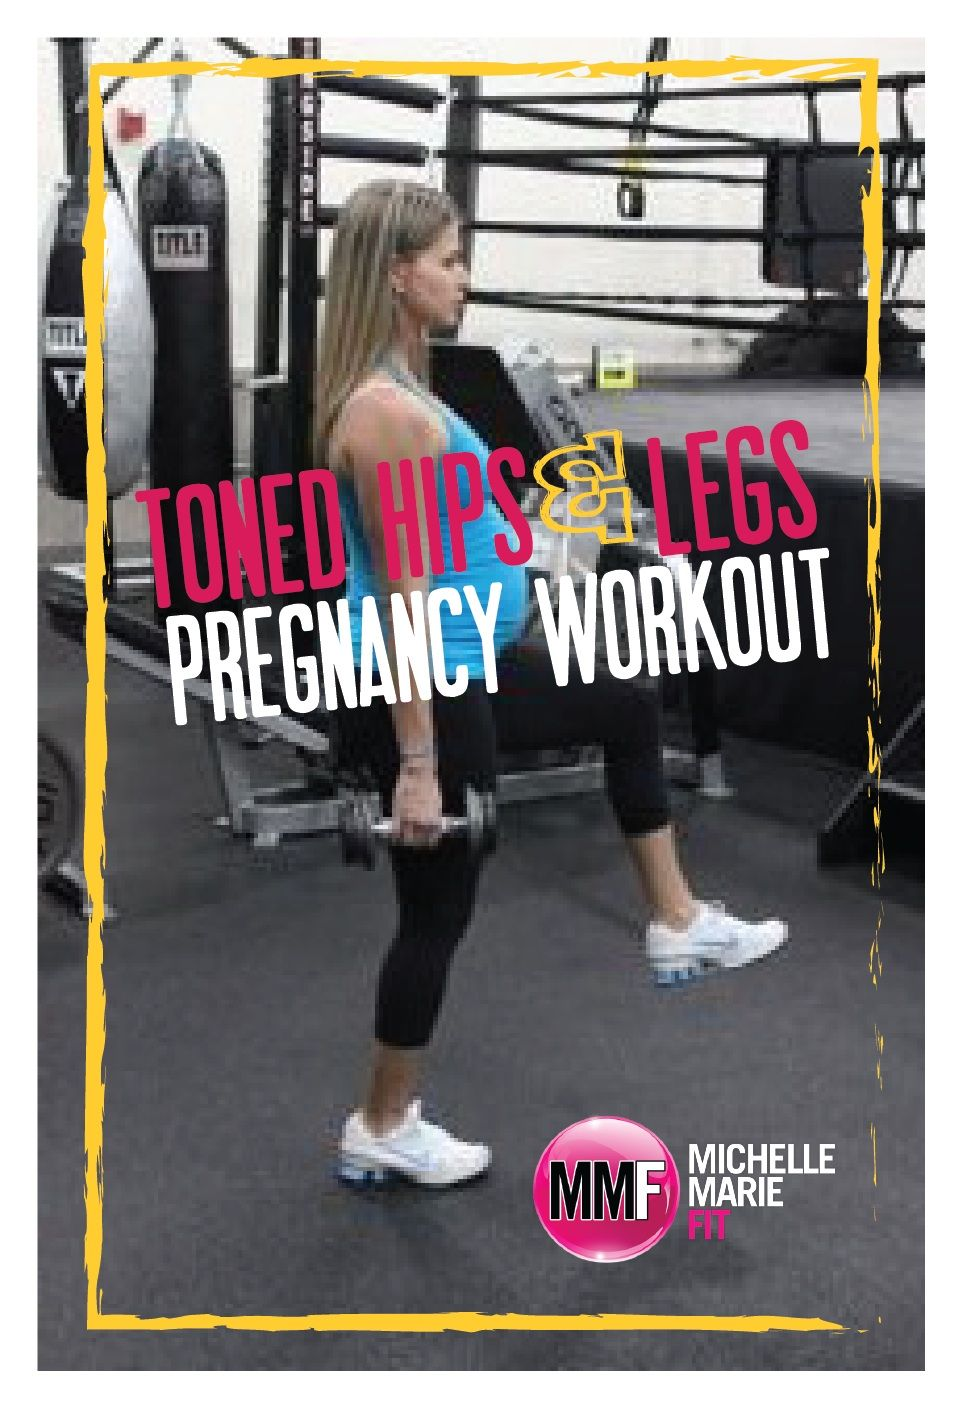 fdcc84318a1a4 Toned Hips   Legs Pregnancy  Workout . To help prevent excess weight gain  during  pregnancy.